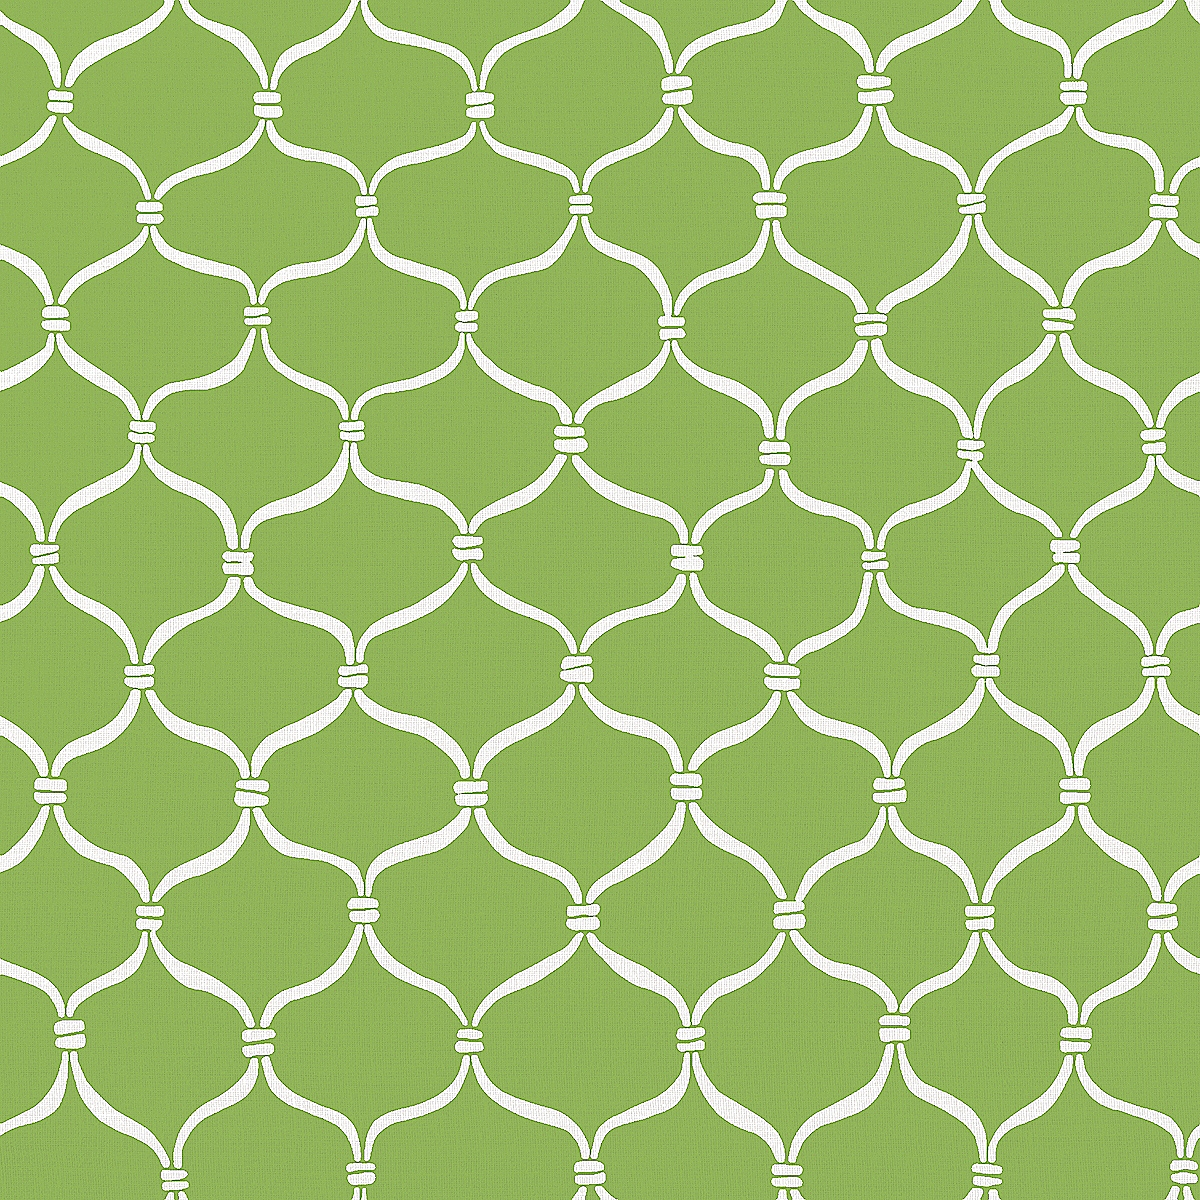 Cast-a-Net: Wheatgrass (fabric yardage)